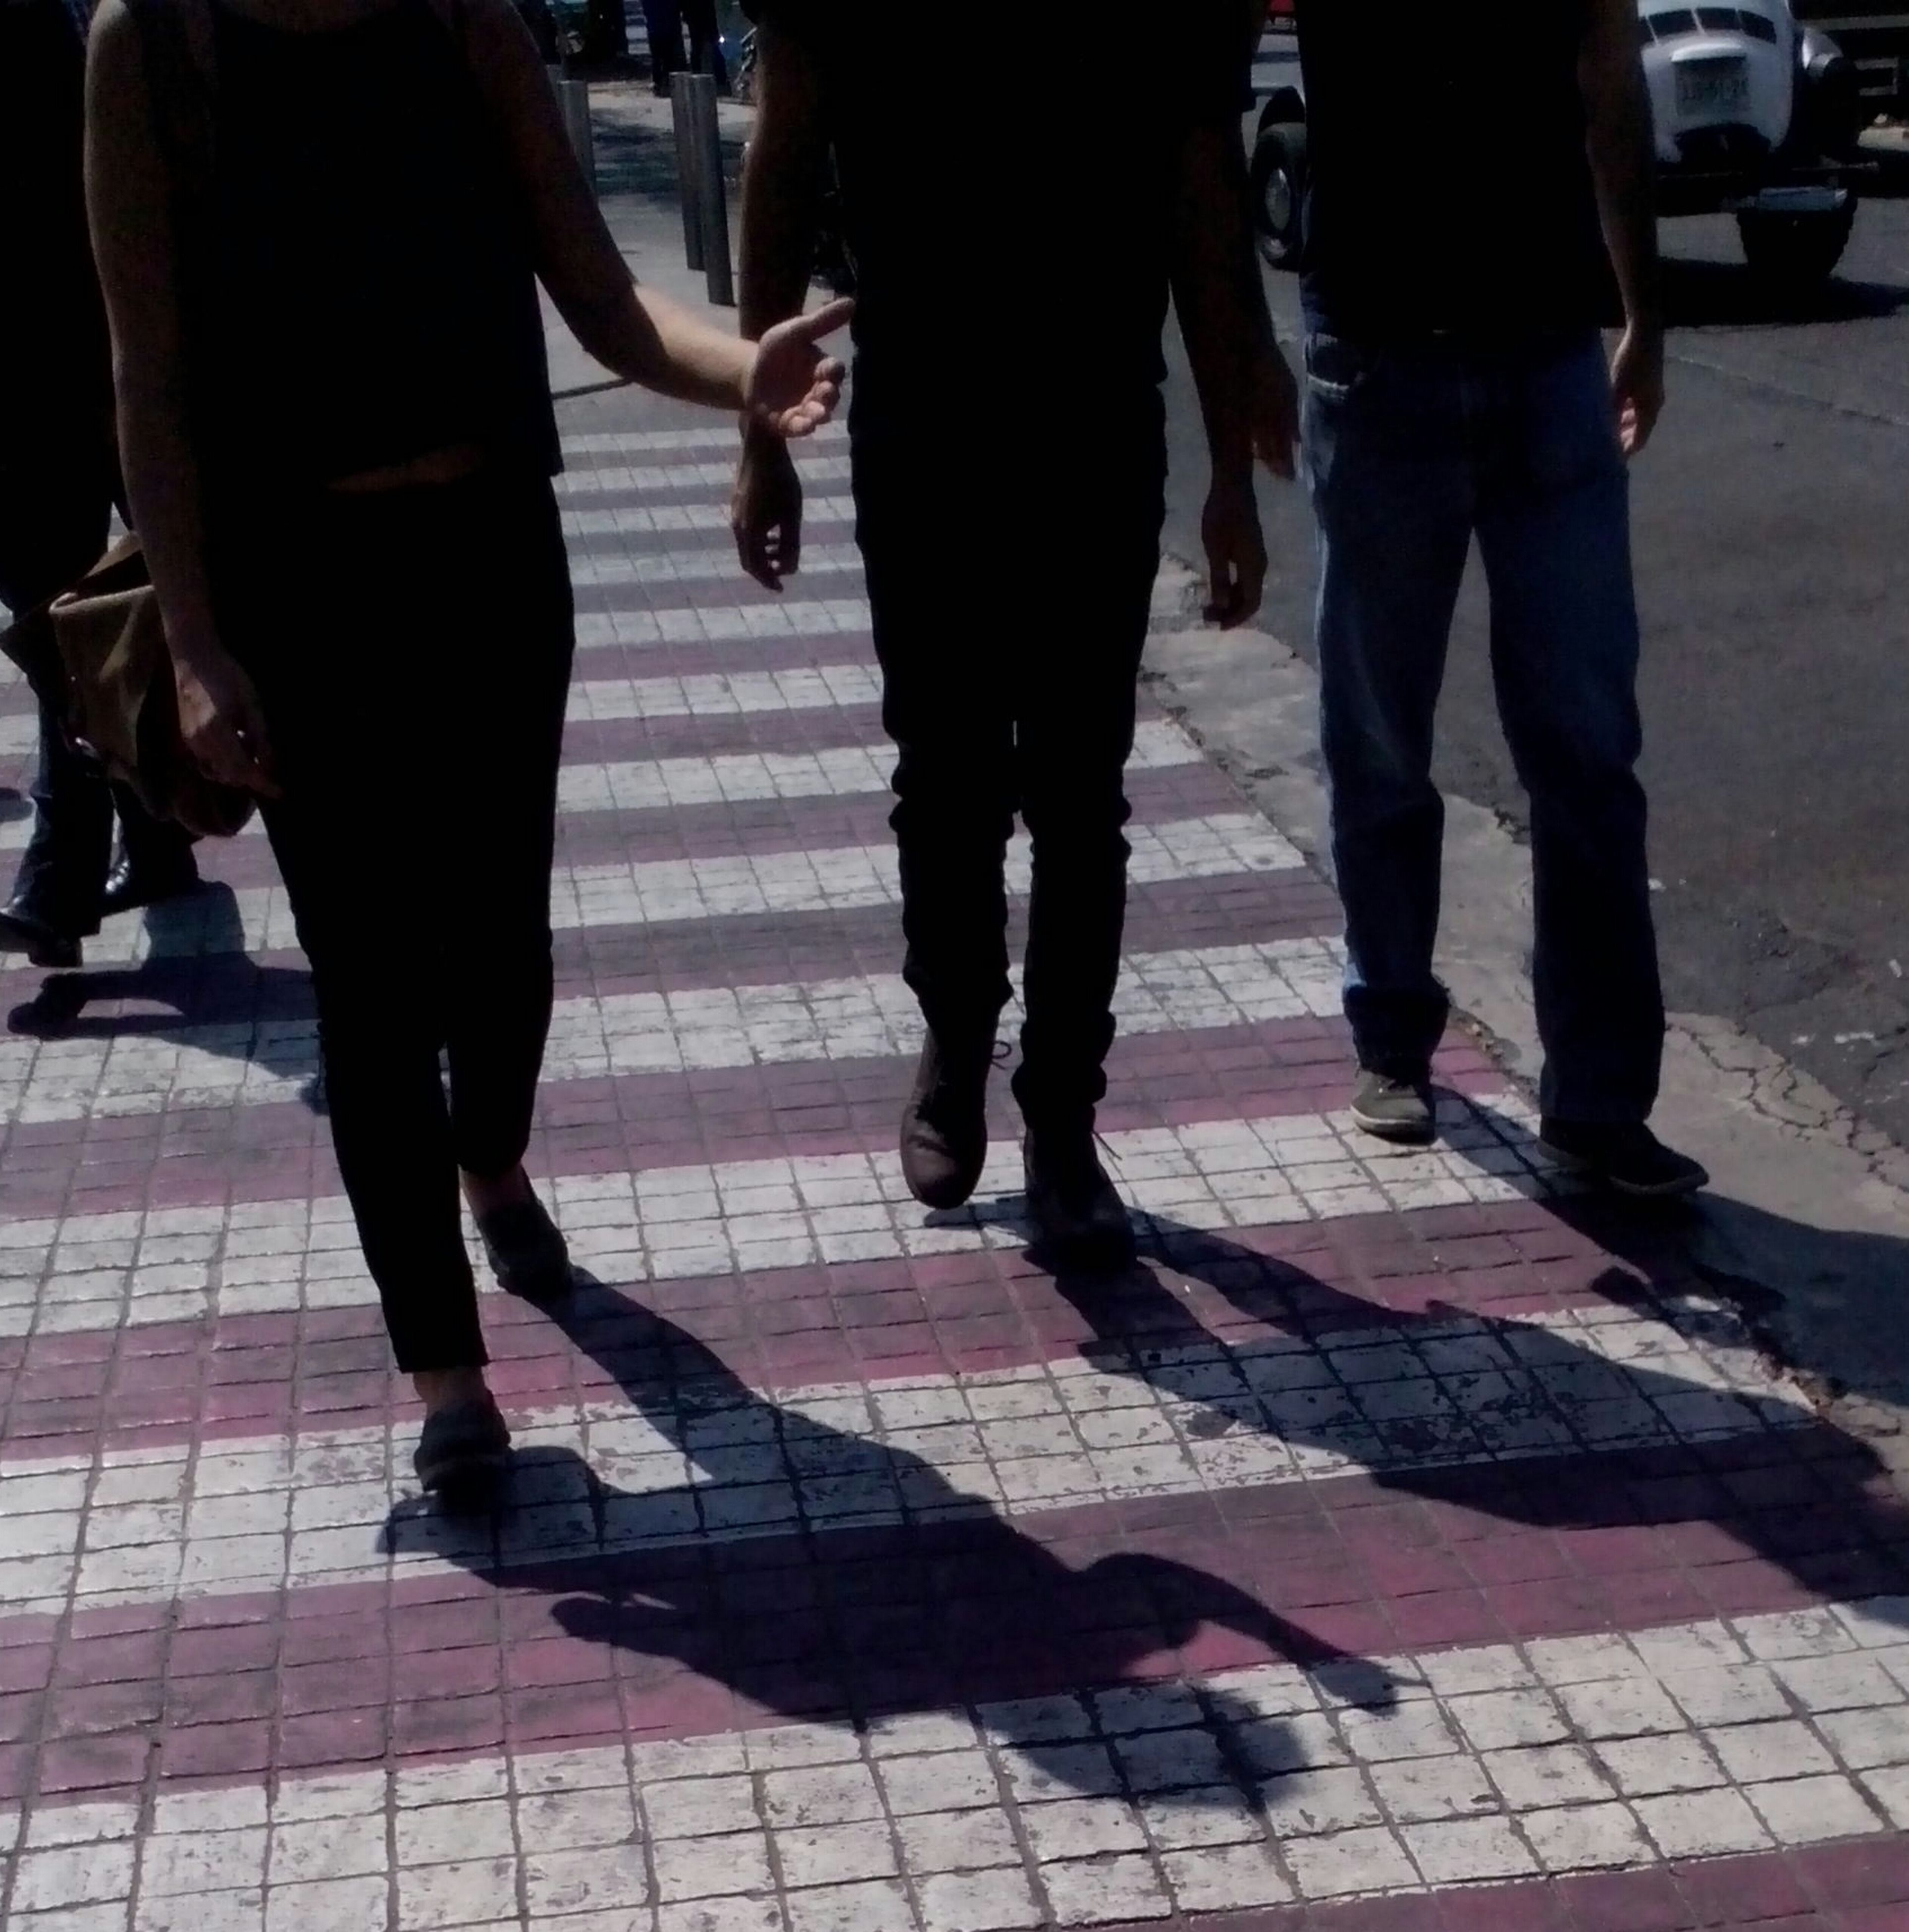 men, street, lifestyles, person, low section, walking, city life, togetherness, leisure activity, shadow, standing, sidewalk, medium group of people, large group of people, sunlight, city, footpath